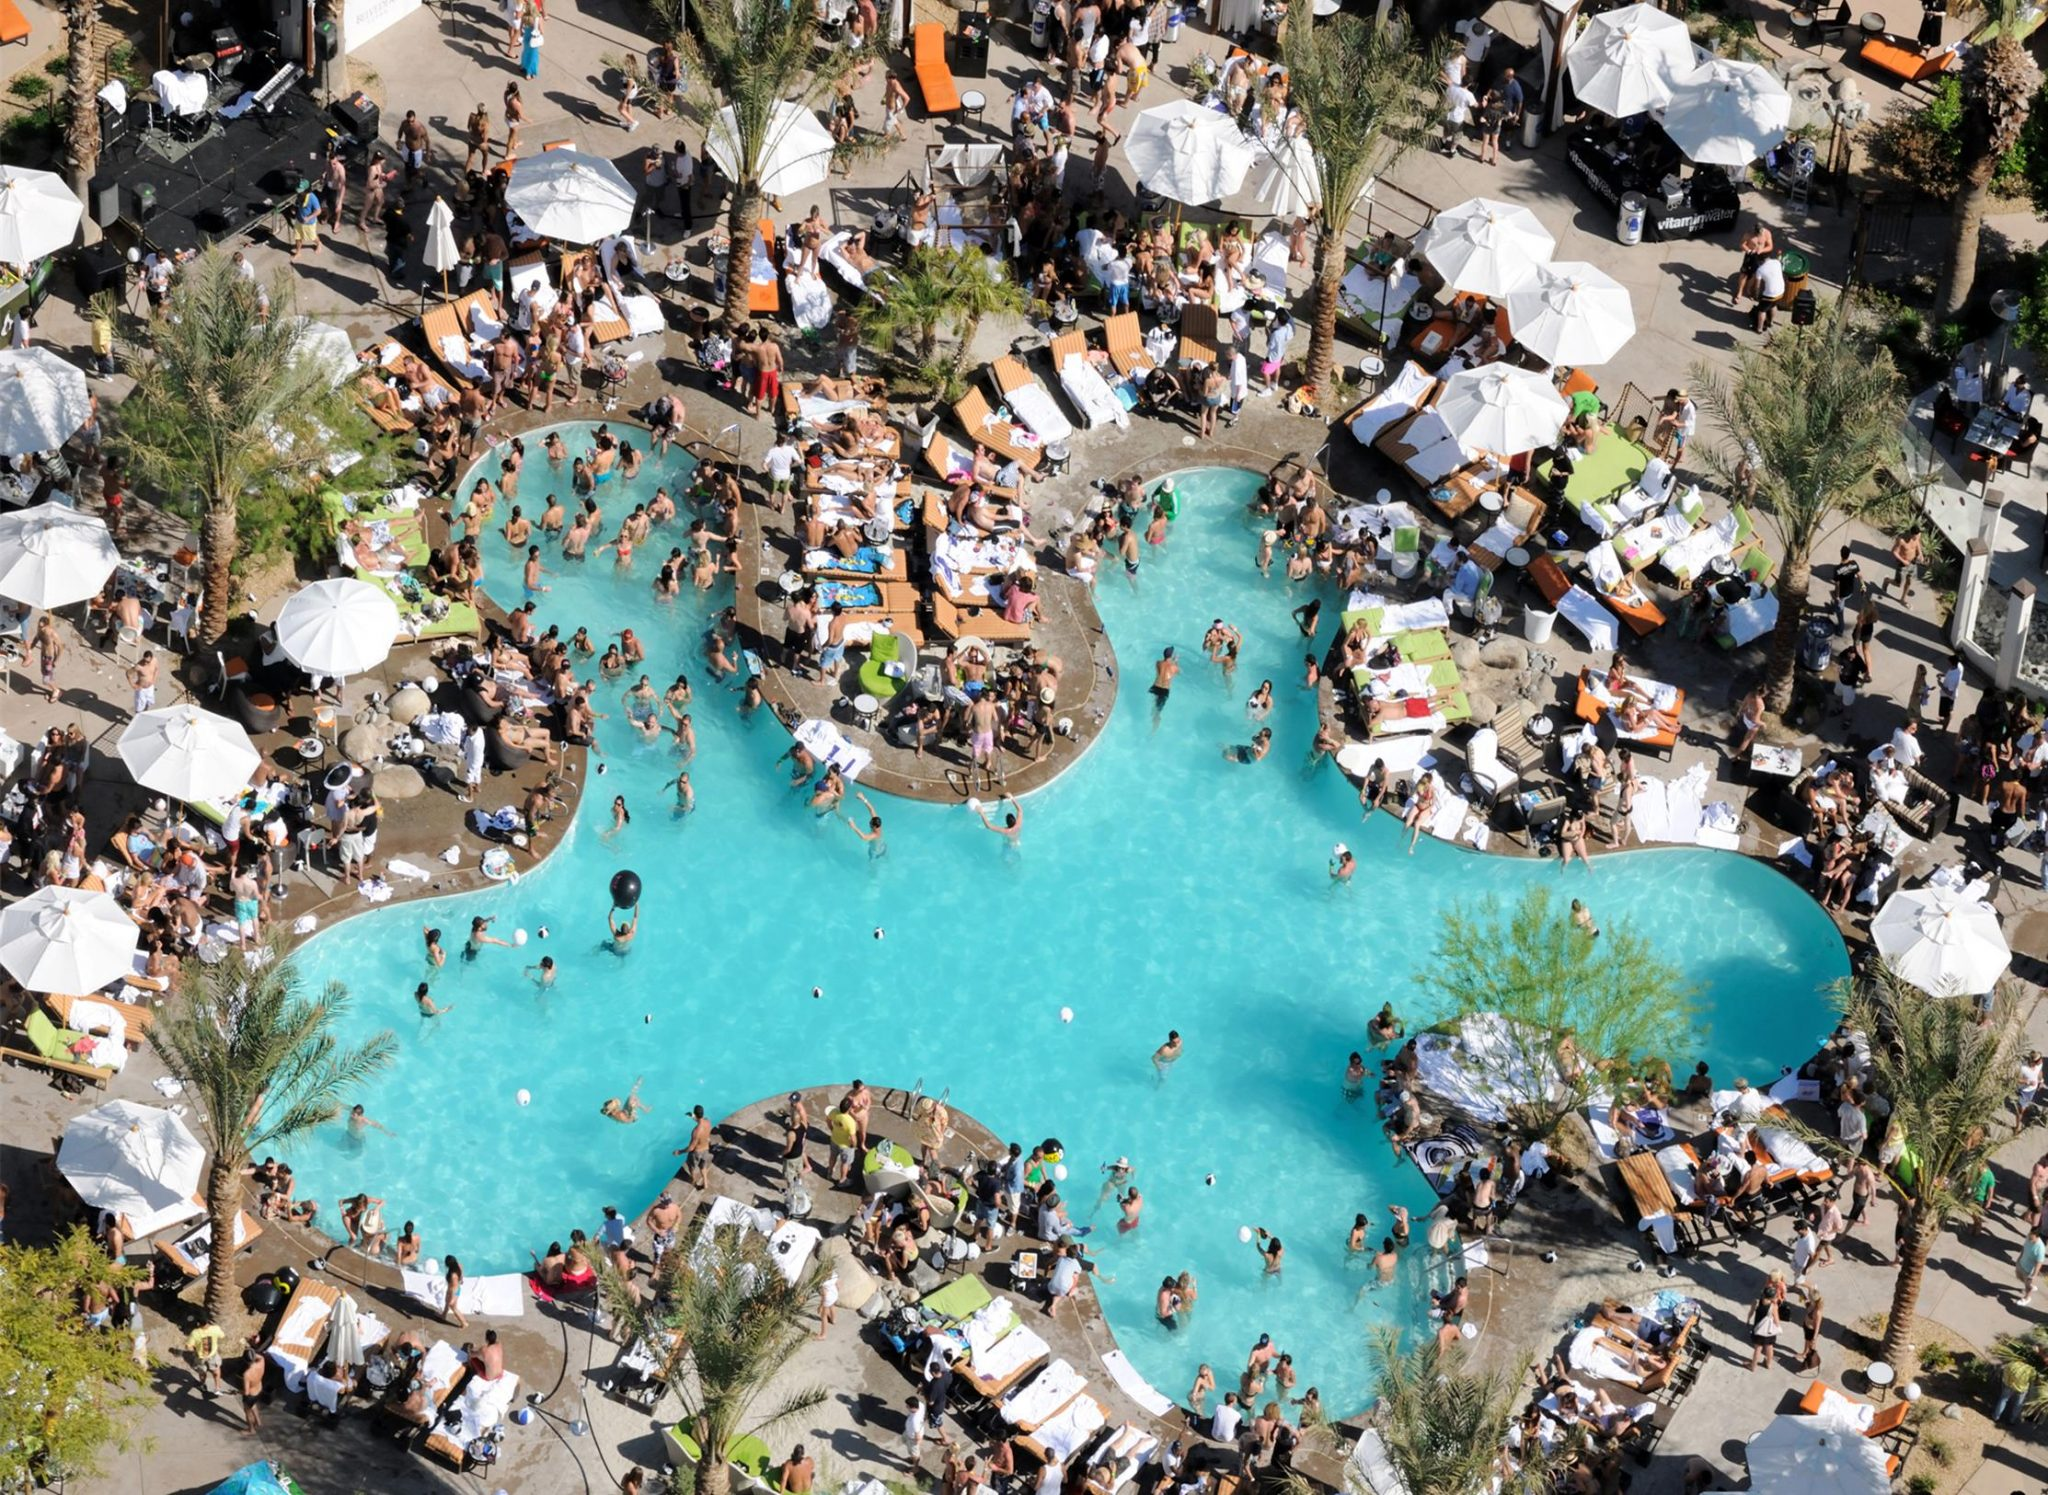 The palm springs riviera pool party is back and as a coachella valley